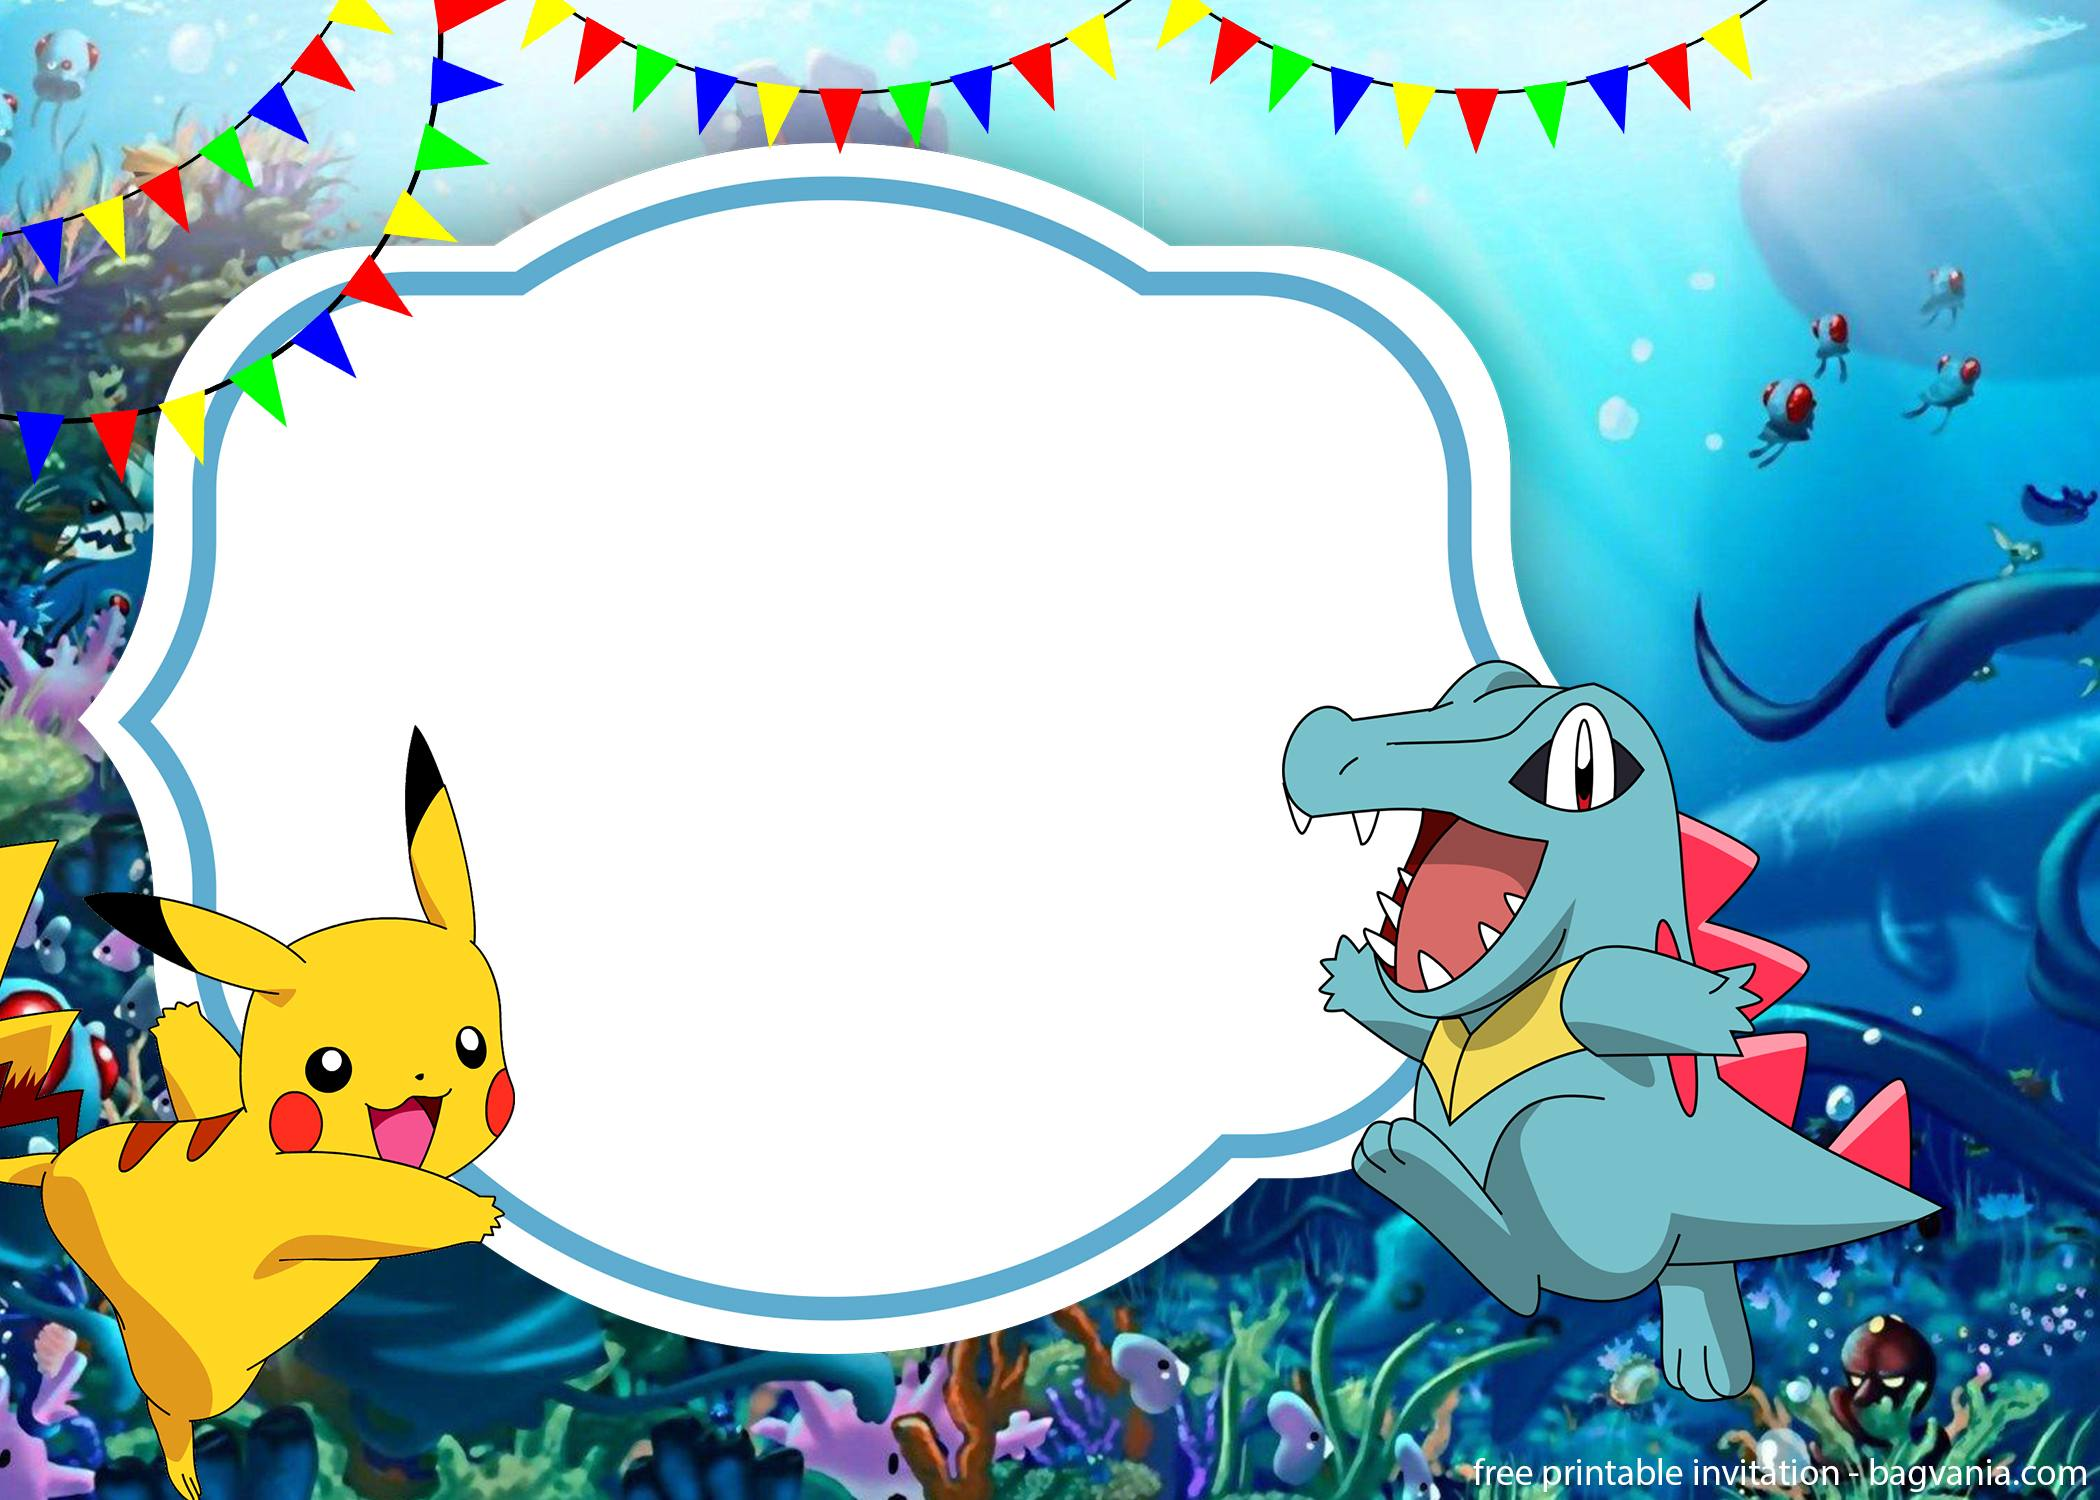 Zap The Birthday Guests With A Pokemon Pikachu Invitation